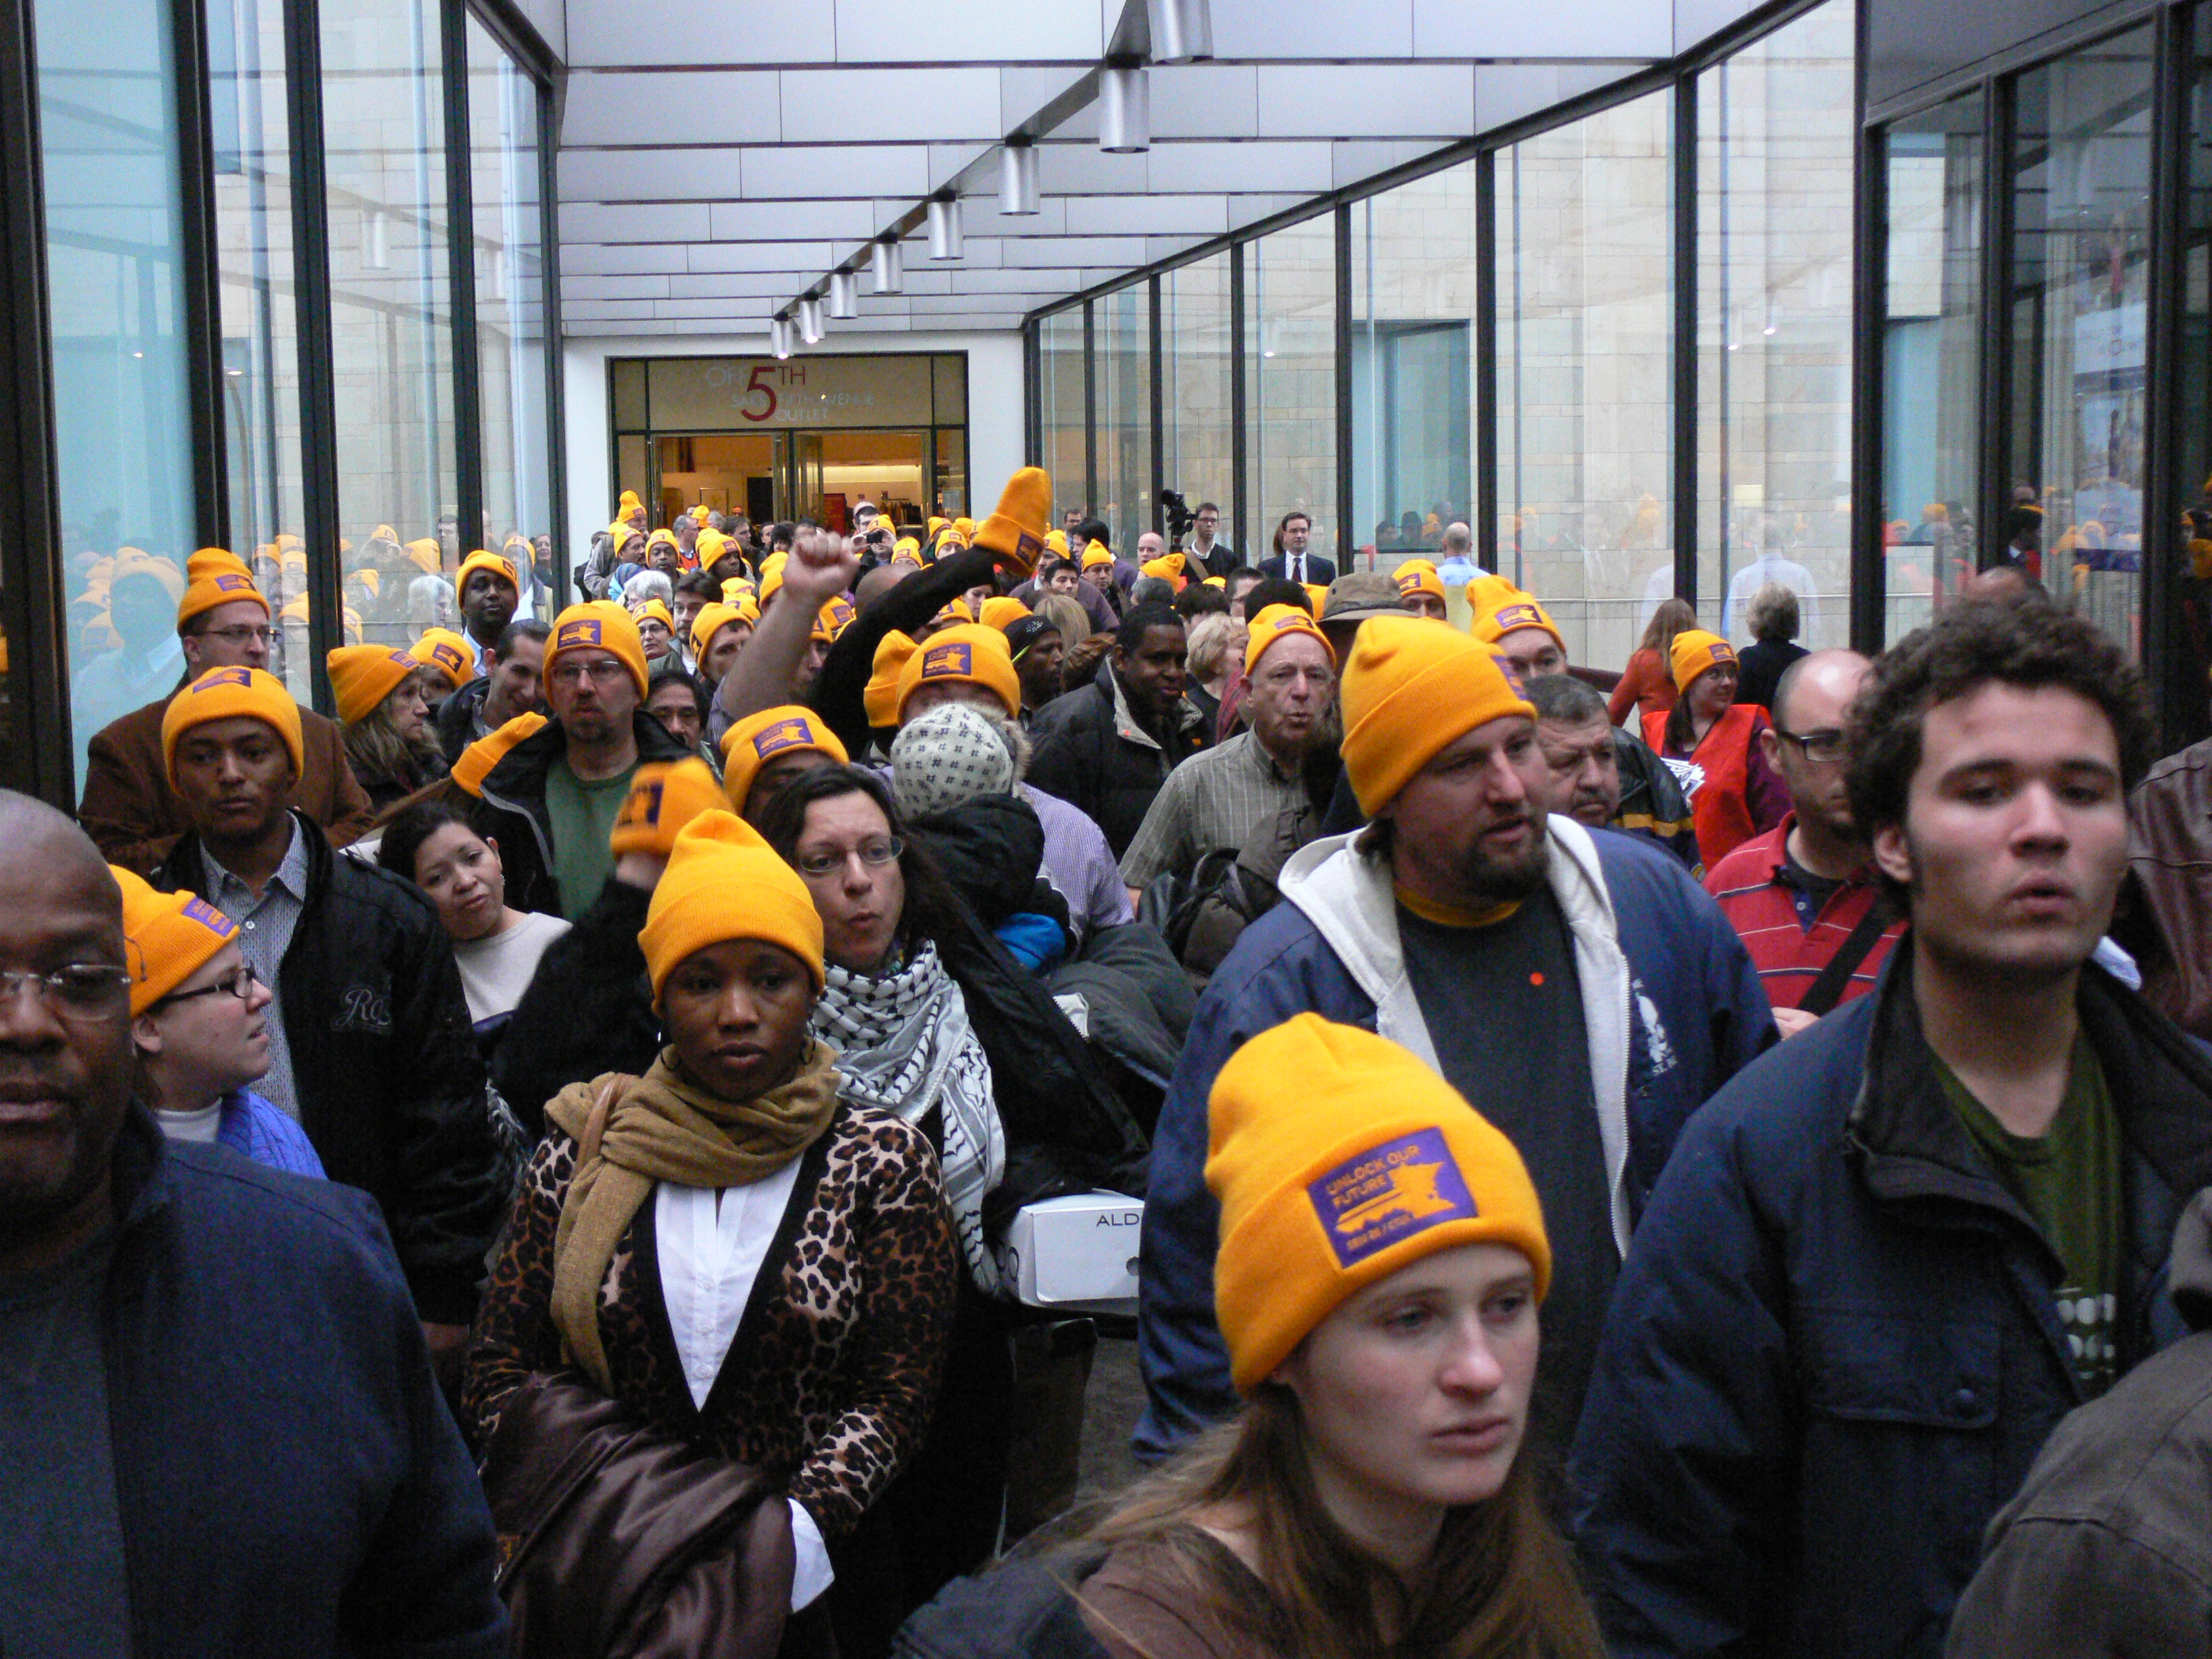 "Hundreds of SEIU Local 26 members and supporters marched through the downtown Minneapolis skyways December 17. Local 26 members work as janitors and security officers for contractors who service downtown Minneapolis buildings. [The ""skyways"" are heated, enclosed bridges which connect much of downtown Minneapolis one floor above street level so people can move about downtown in the winter without going outside--except during the march, when the SEIU folks filled the skyways!] (Photos by Rafael Morataya)"